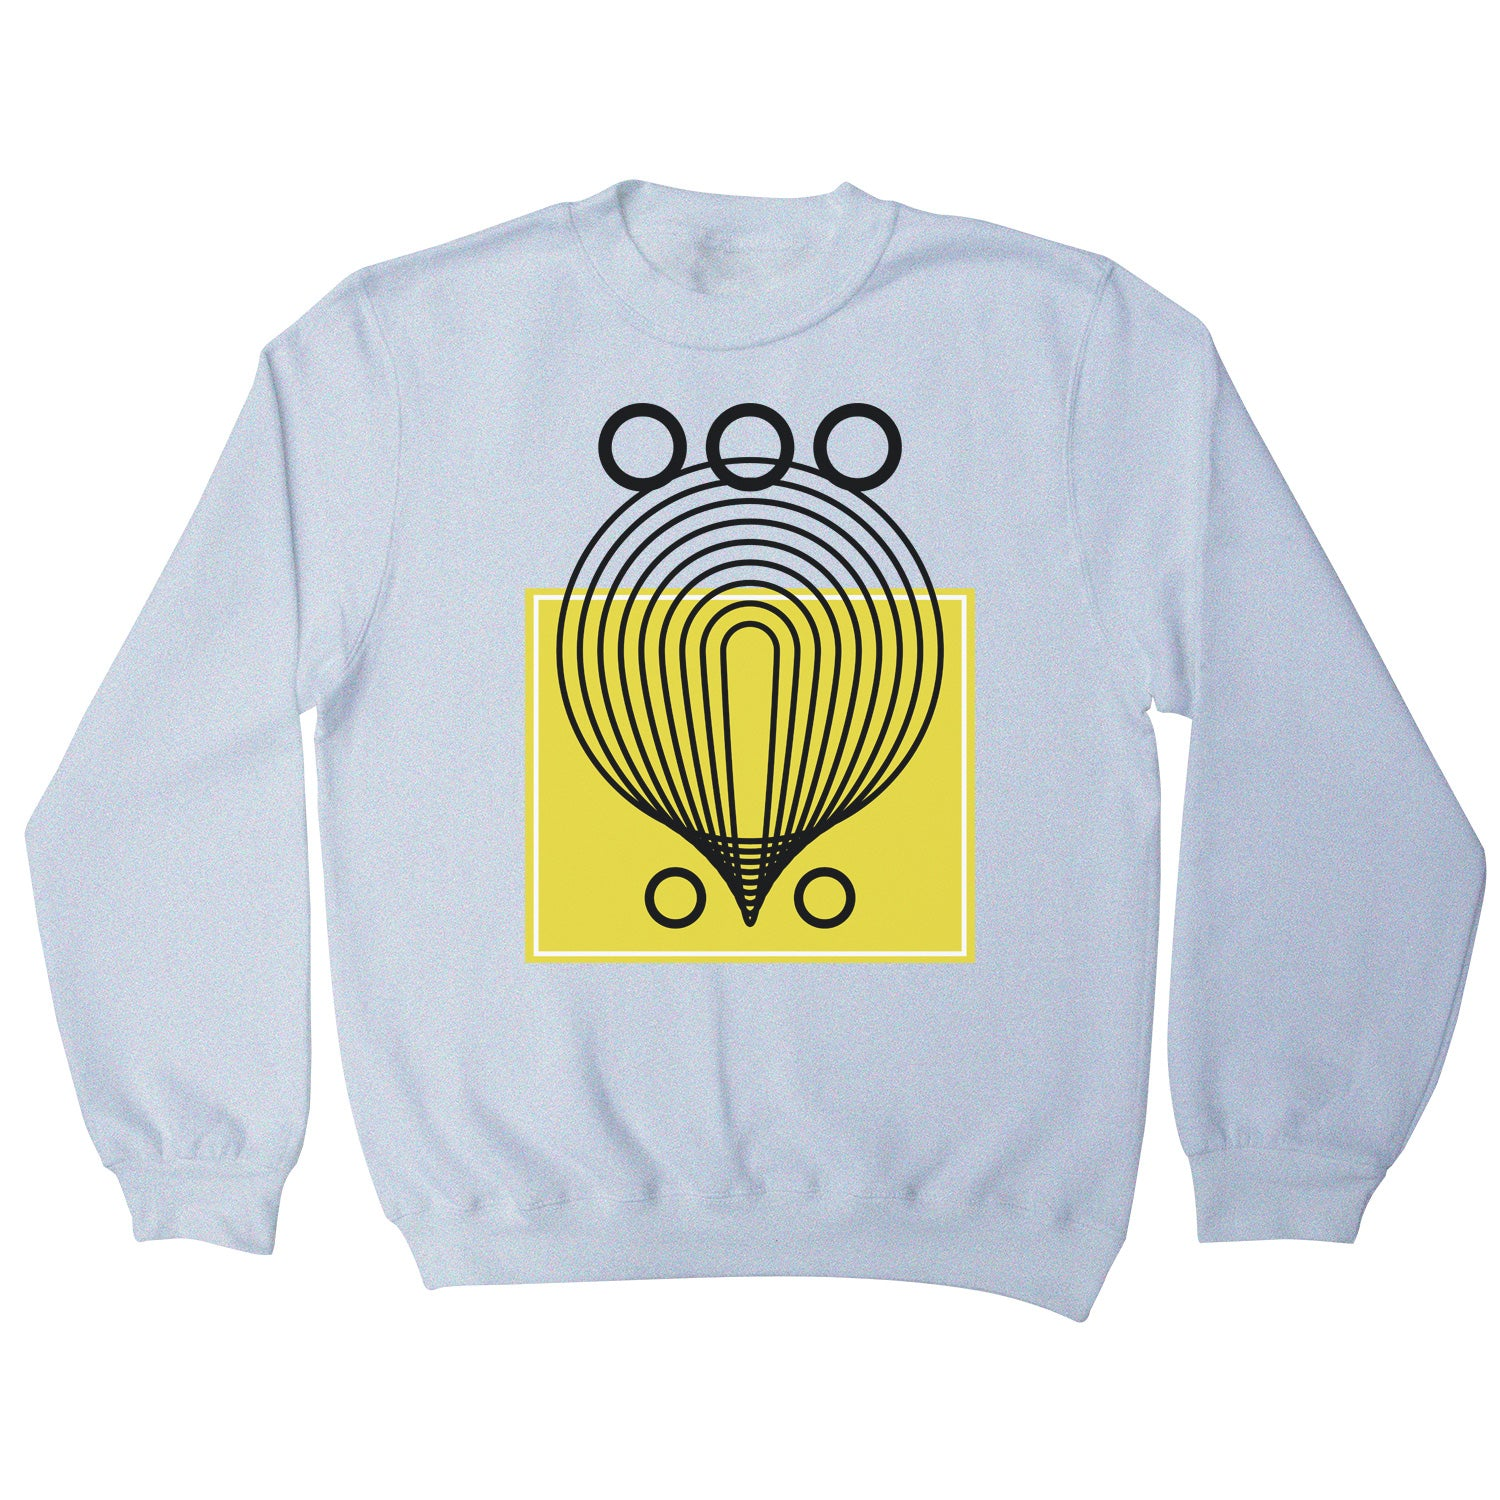 Geometric abstract shapes sweatshirt